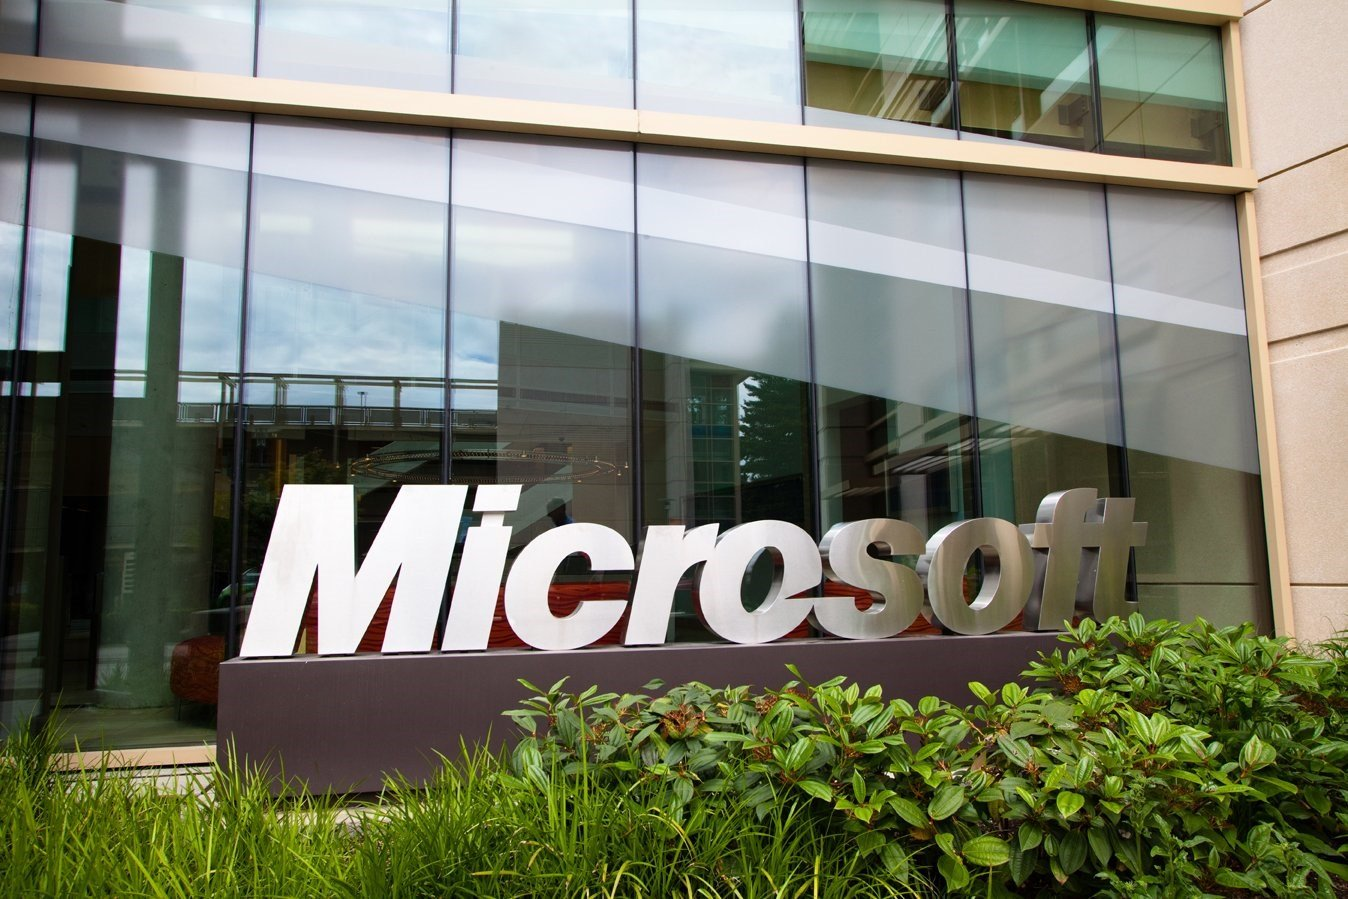 Microsoft Corporation (MSFT) Has Another Very Strong Trading Session